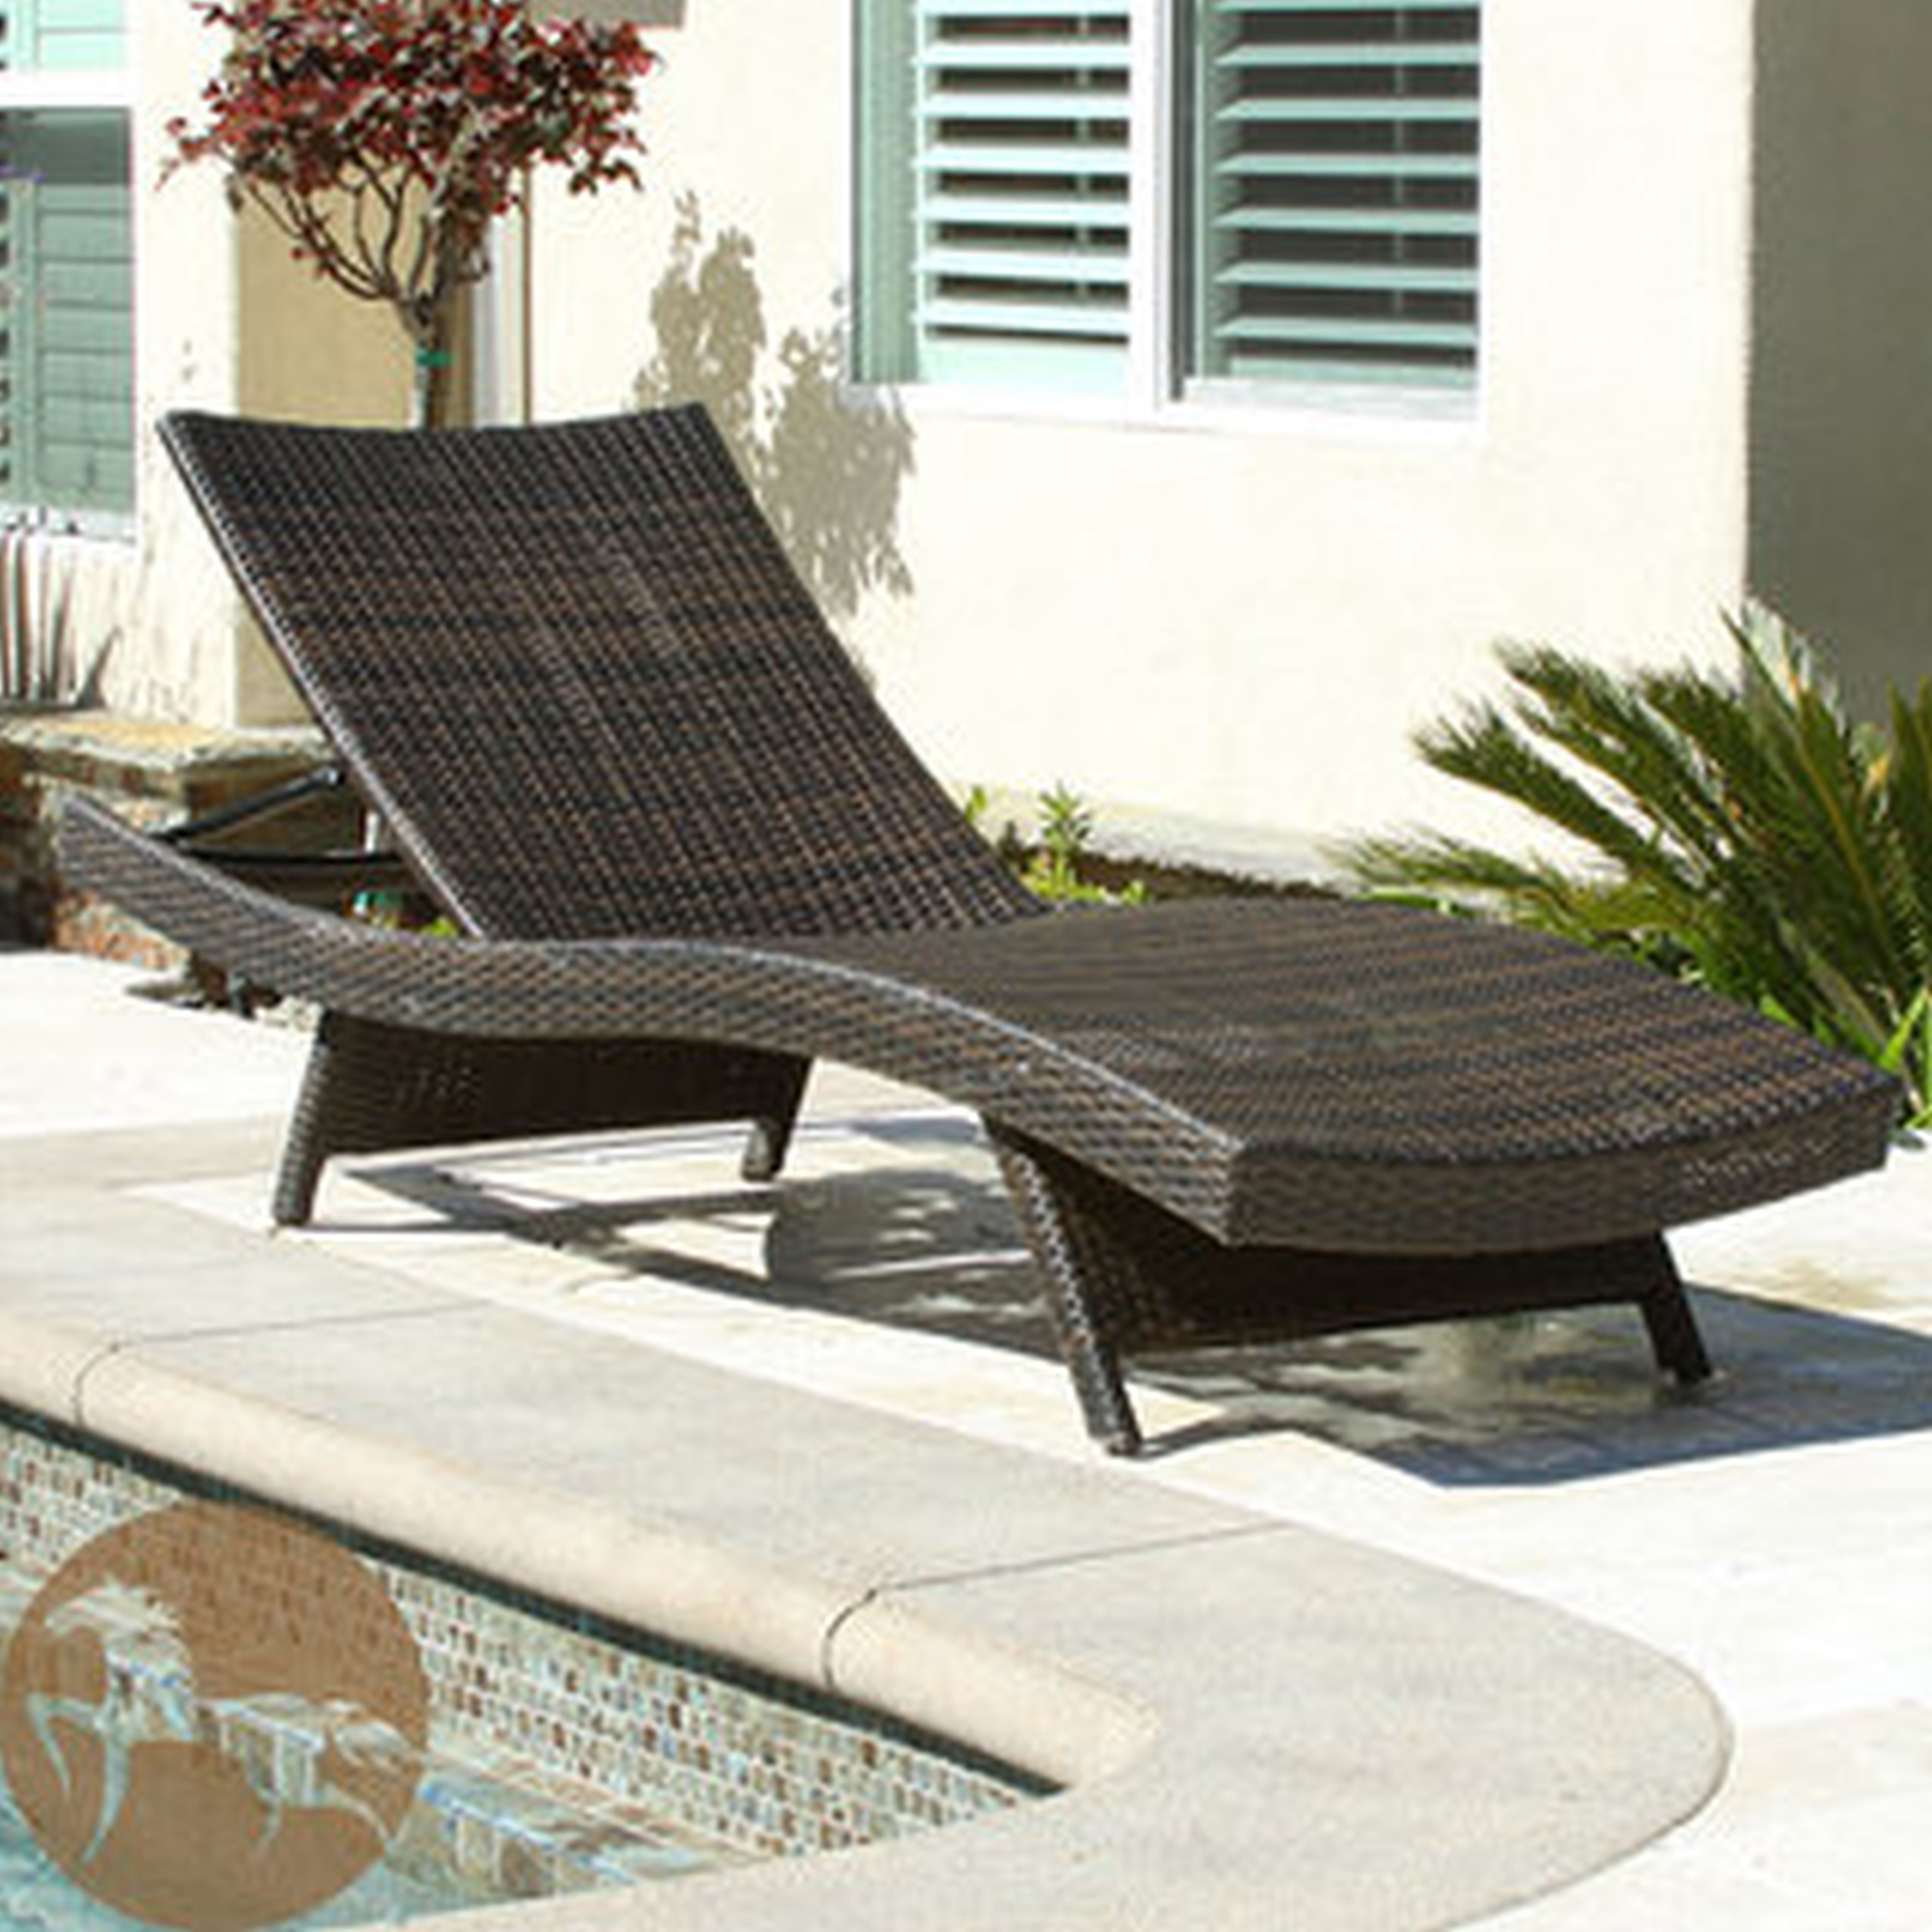 Outdoor Chaise Lounge Chairs At Walmart For 2017 Outdoor : Chaise Lounge Sofa Lowes Patio Furniture Clearance (View 11 of 15)